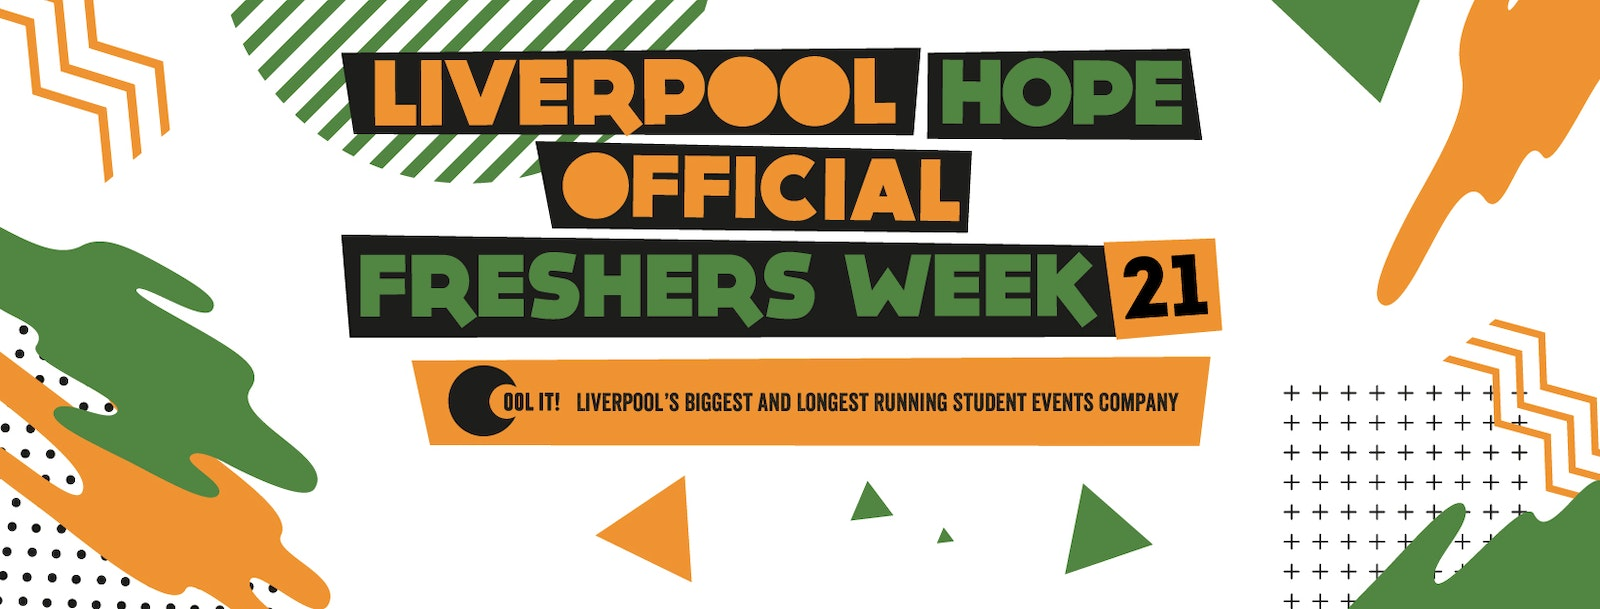 Liverpool Hope University Official Freshers Week 2021